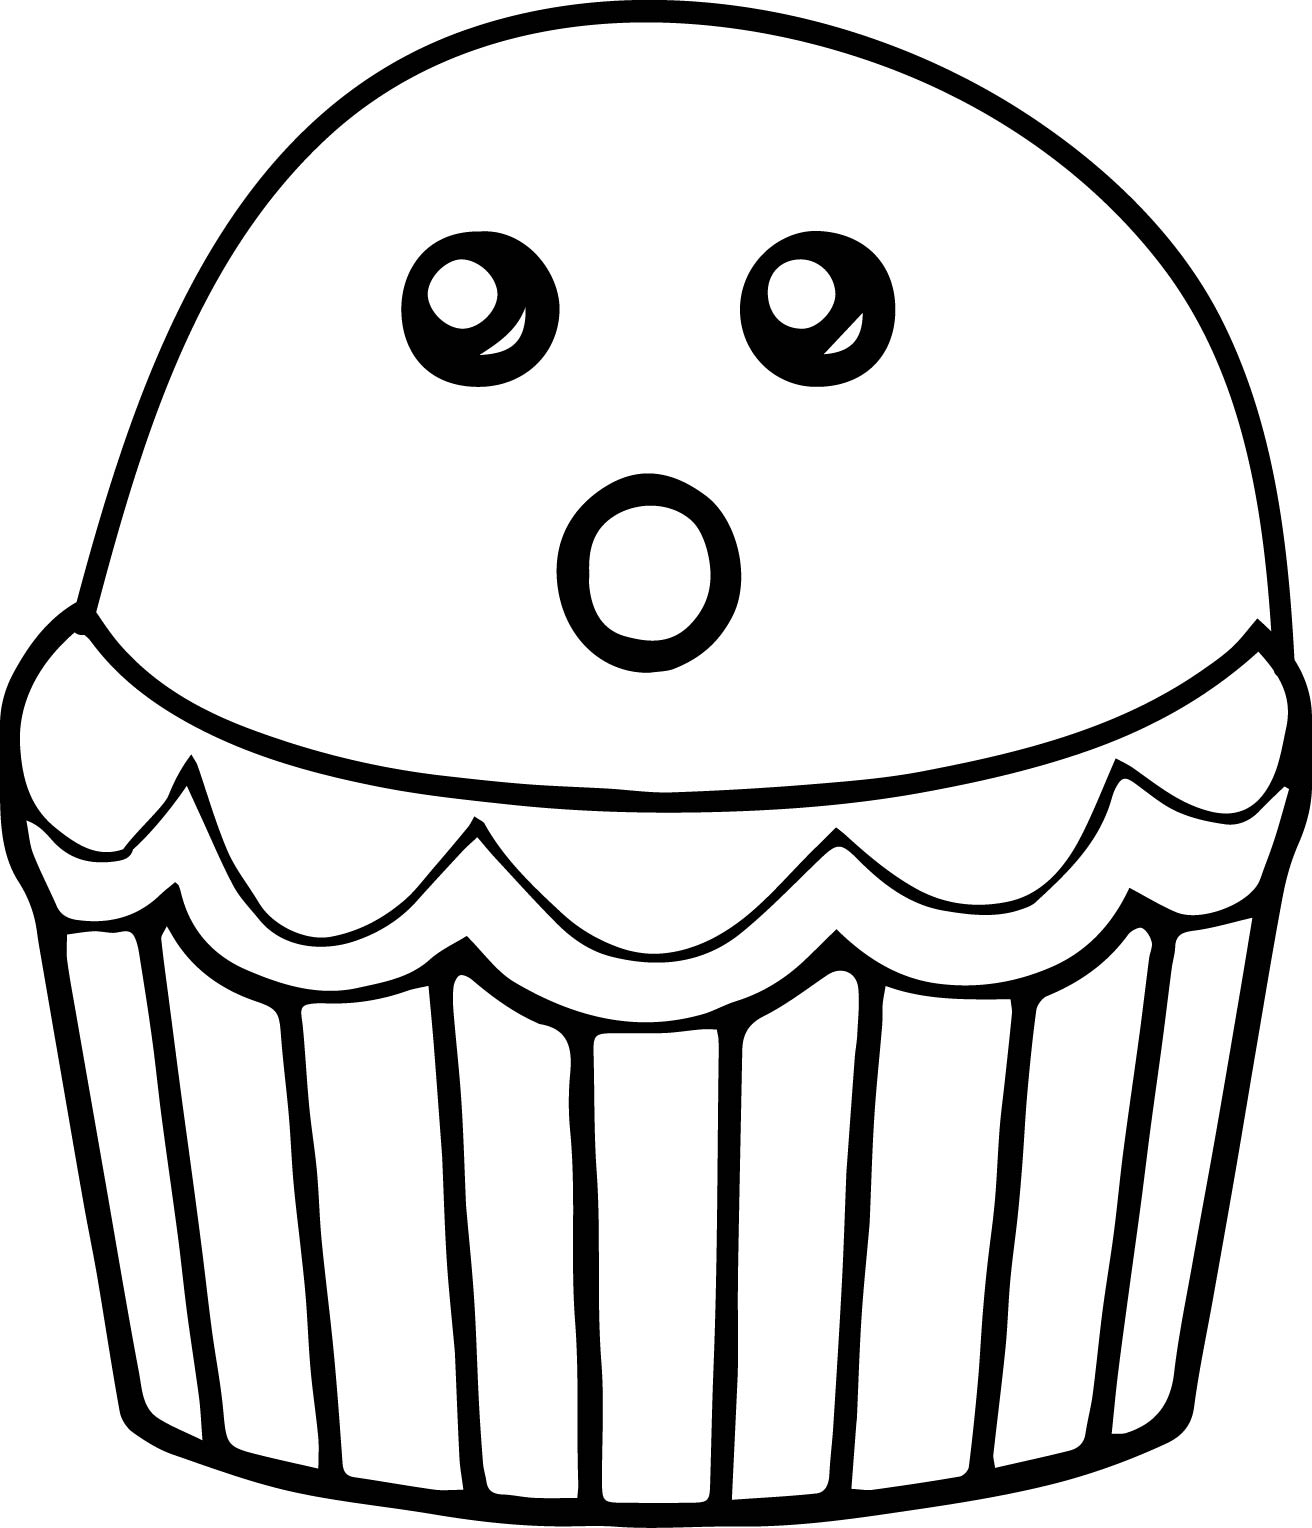 Halloween cupcake coloring page for Cupcake color pages